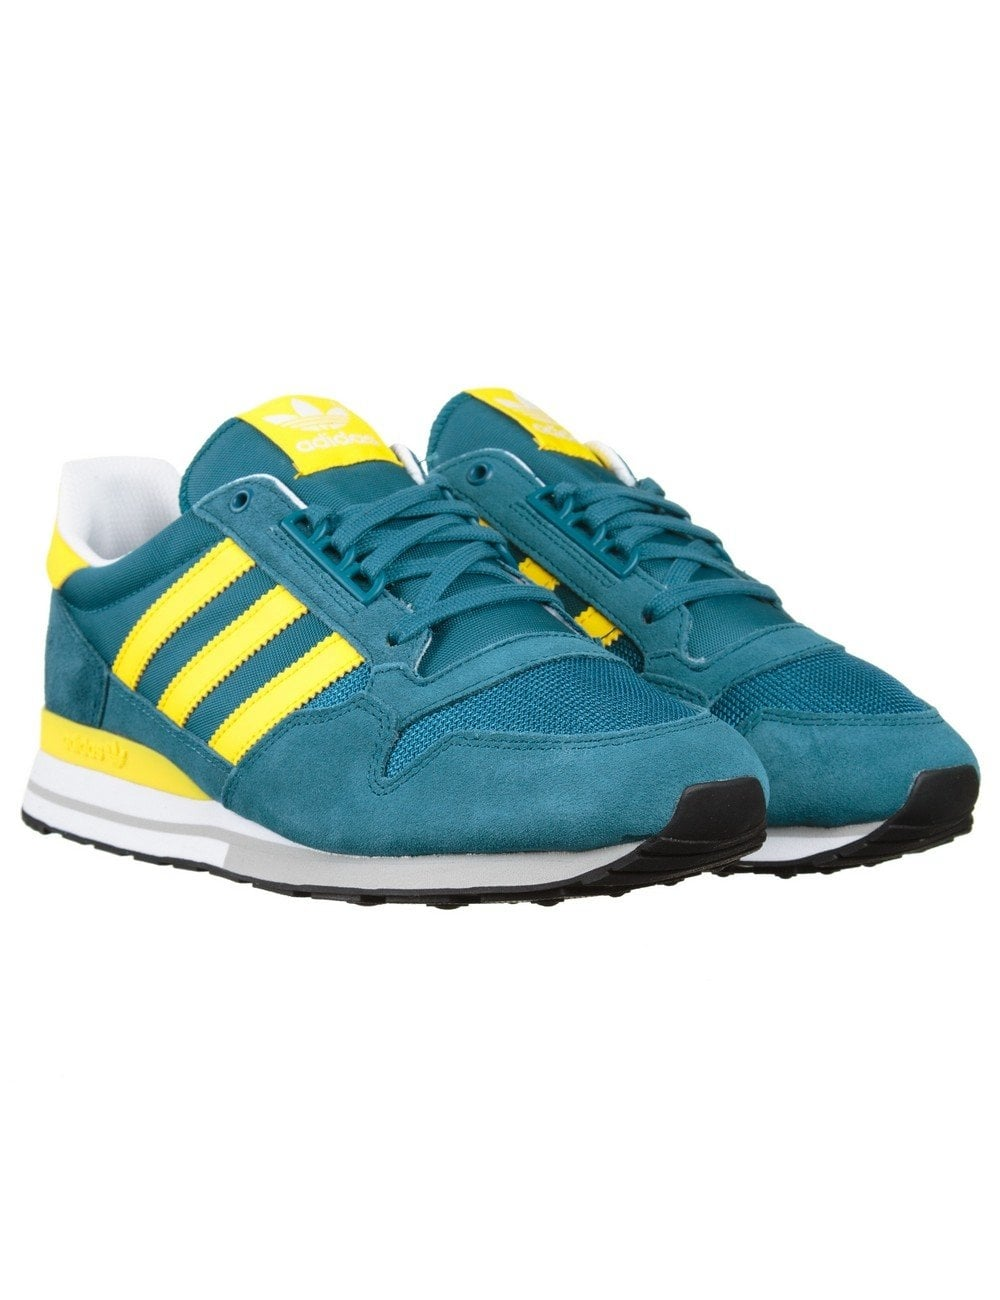 separation shoes 1c5eb 9bed6 ZX 500 OG Shoes - Surf Petrol/Yellow